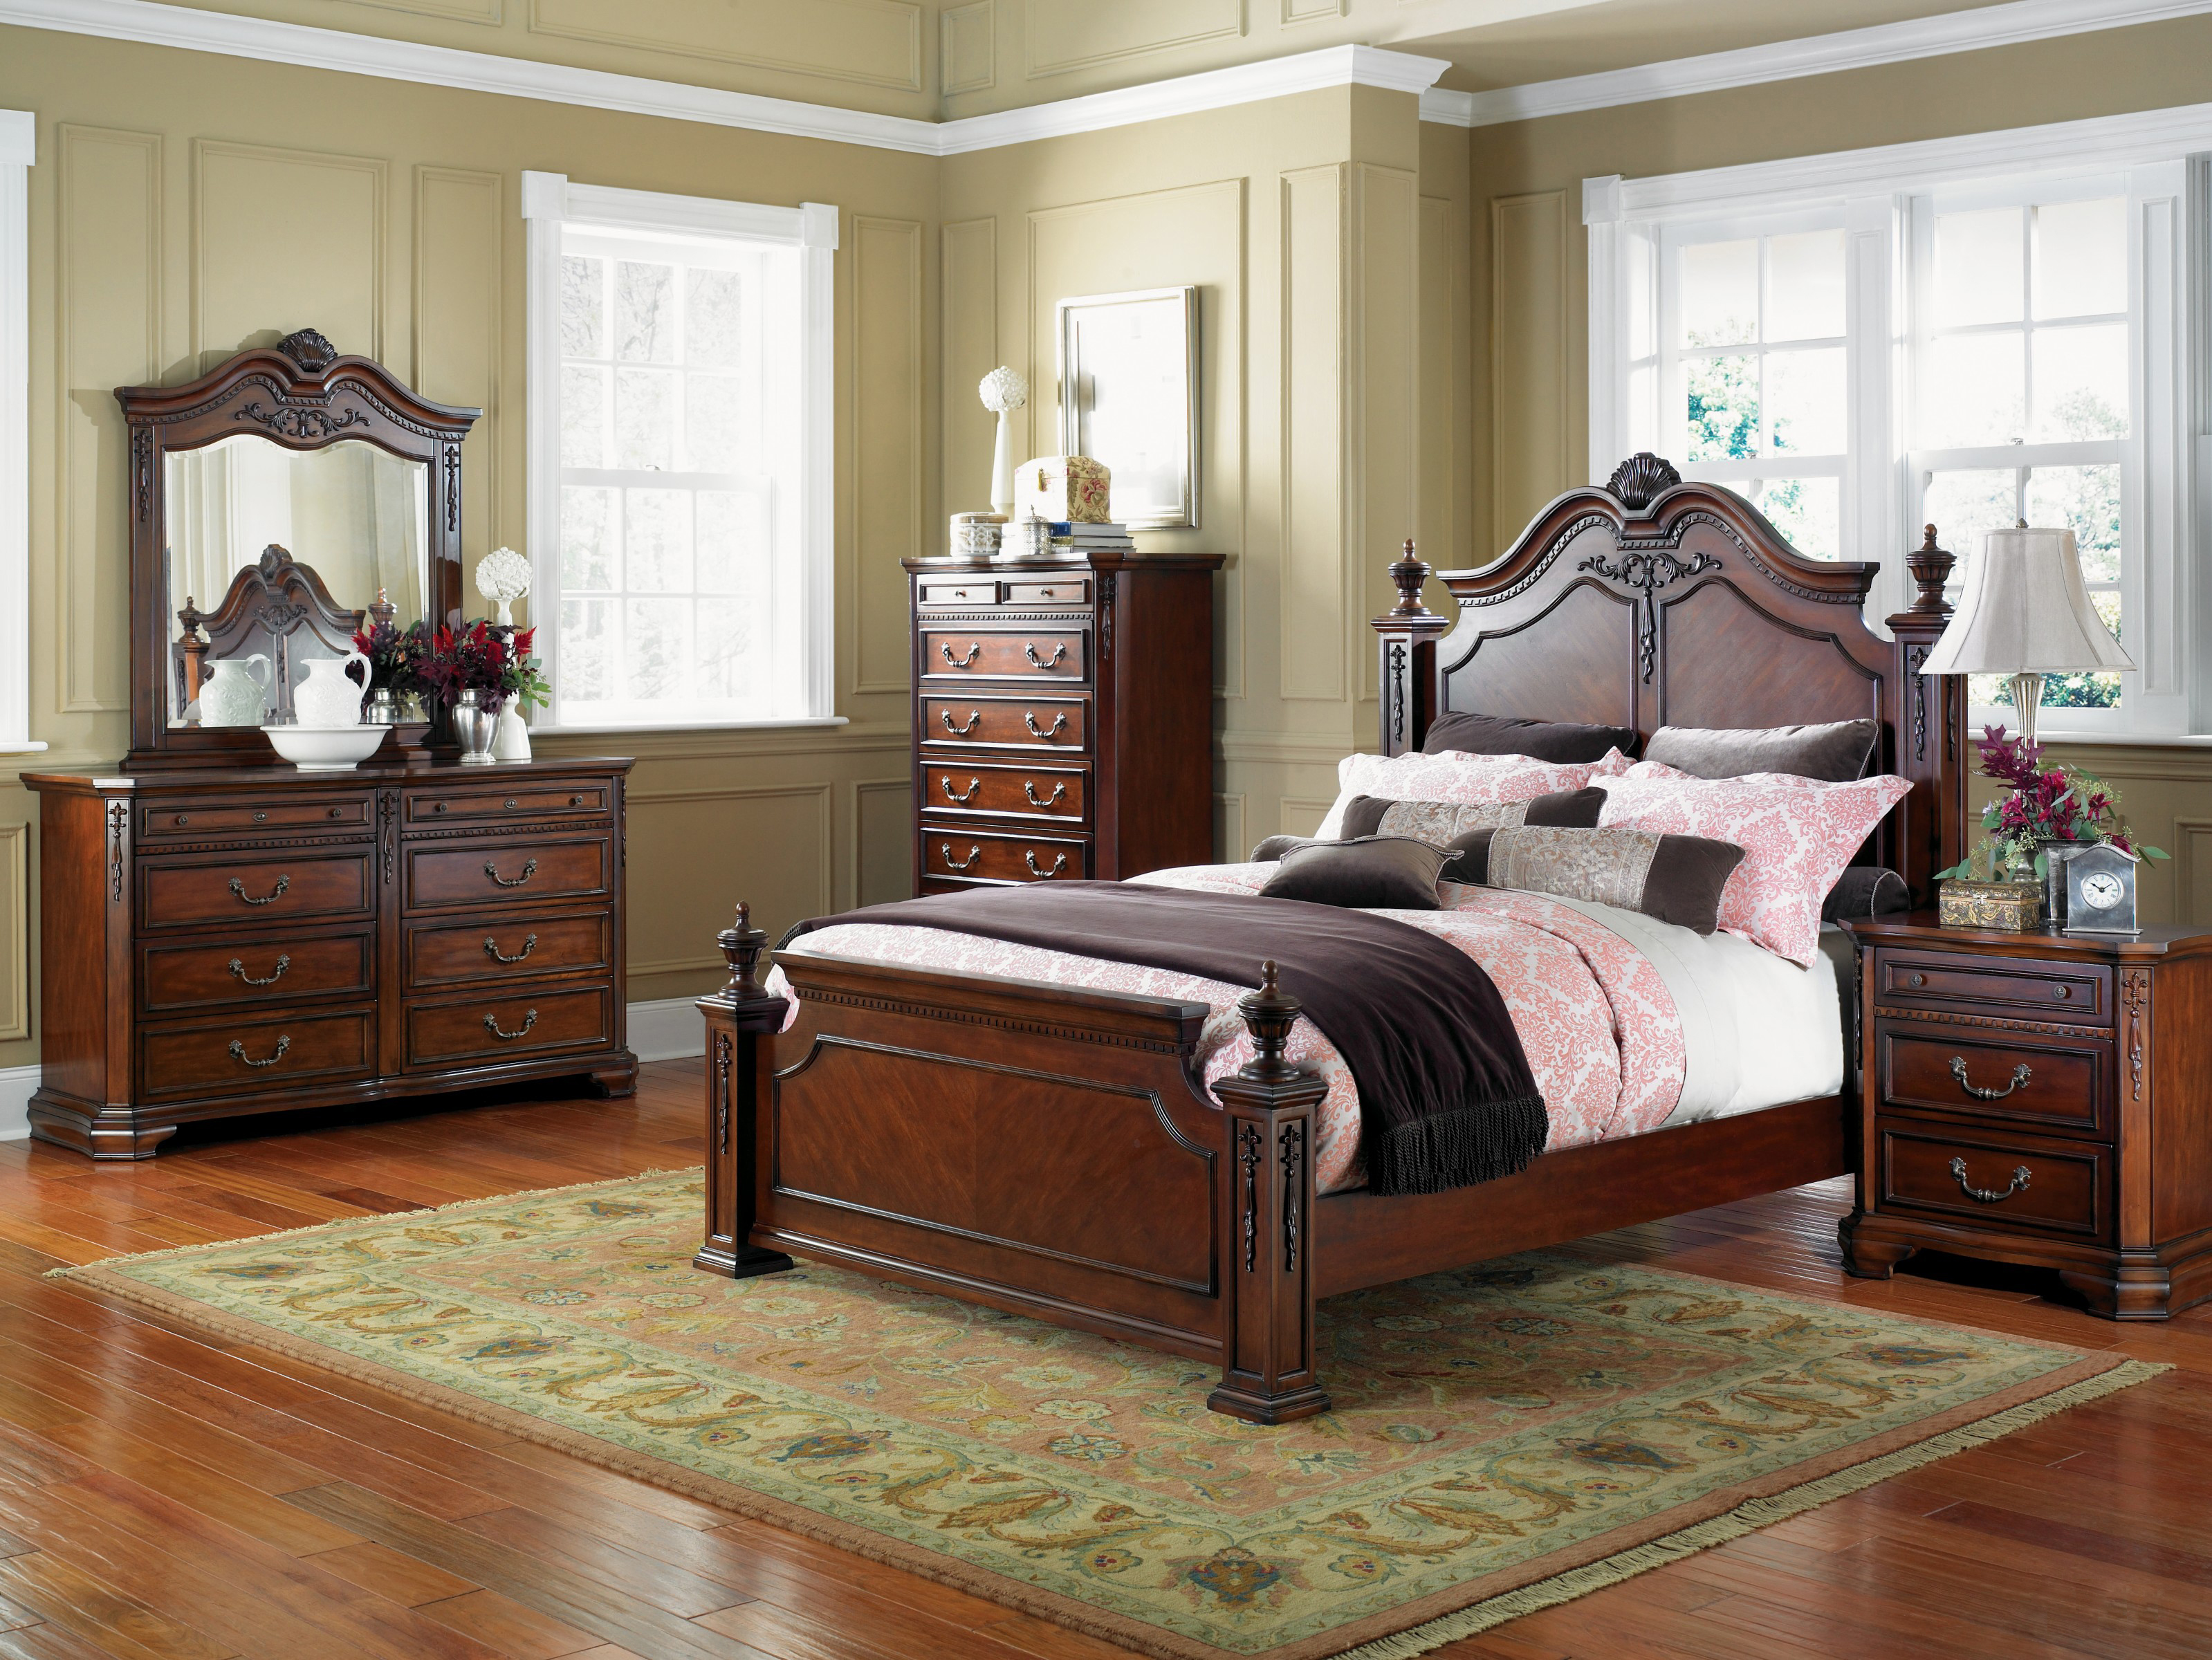 Bedroom furniture for M bedroom furniture